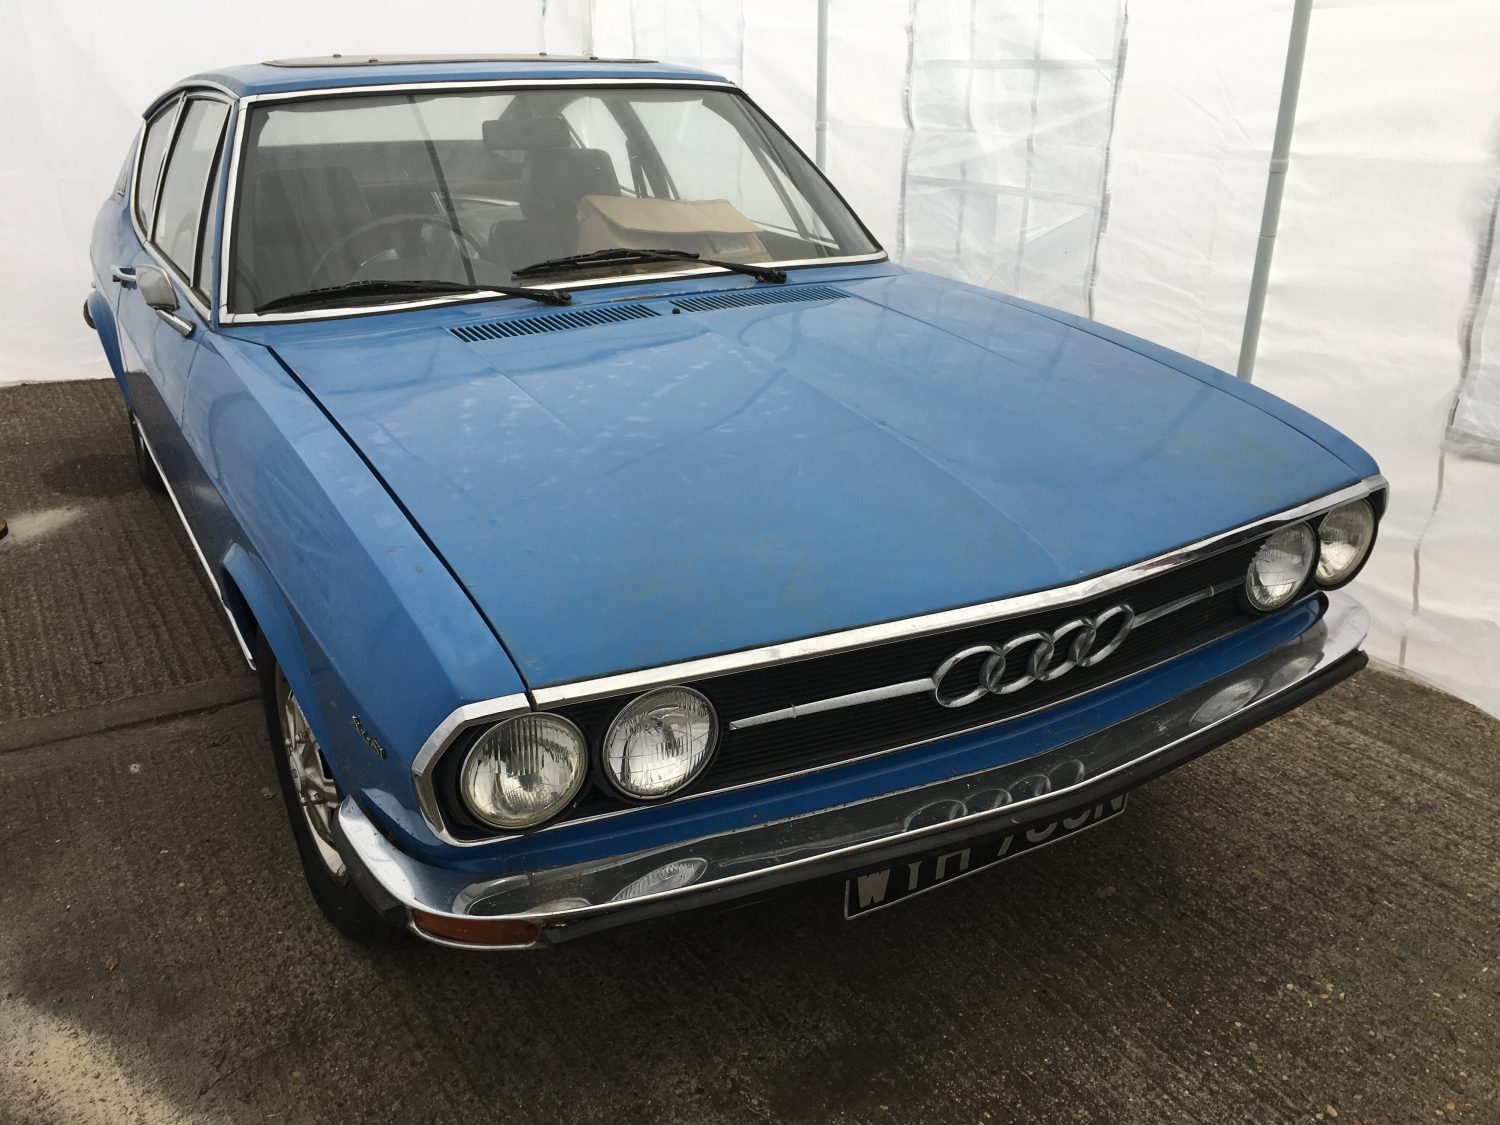 1974 audi 100 coupe s in for full restoration bridge classic cars. Black Bedroom Furniture Sets. Home Design Ideas